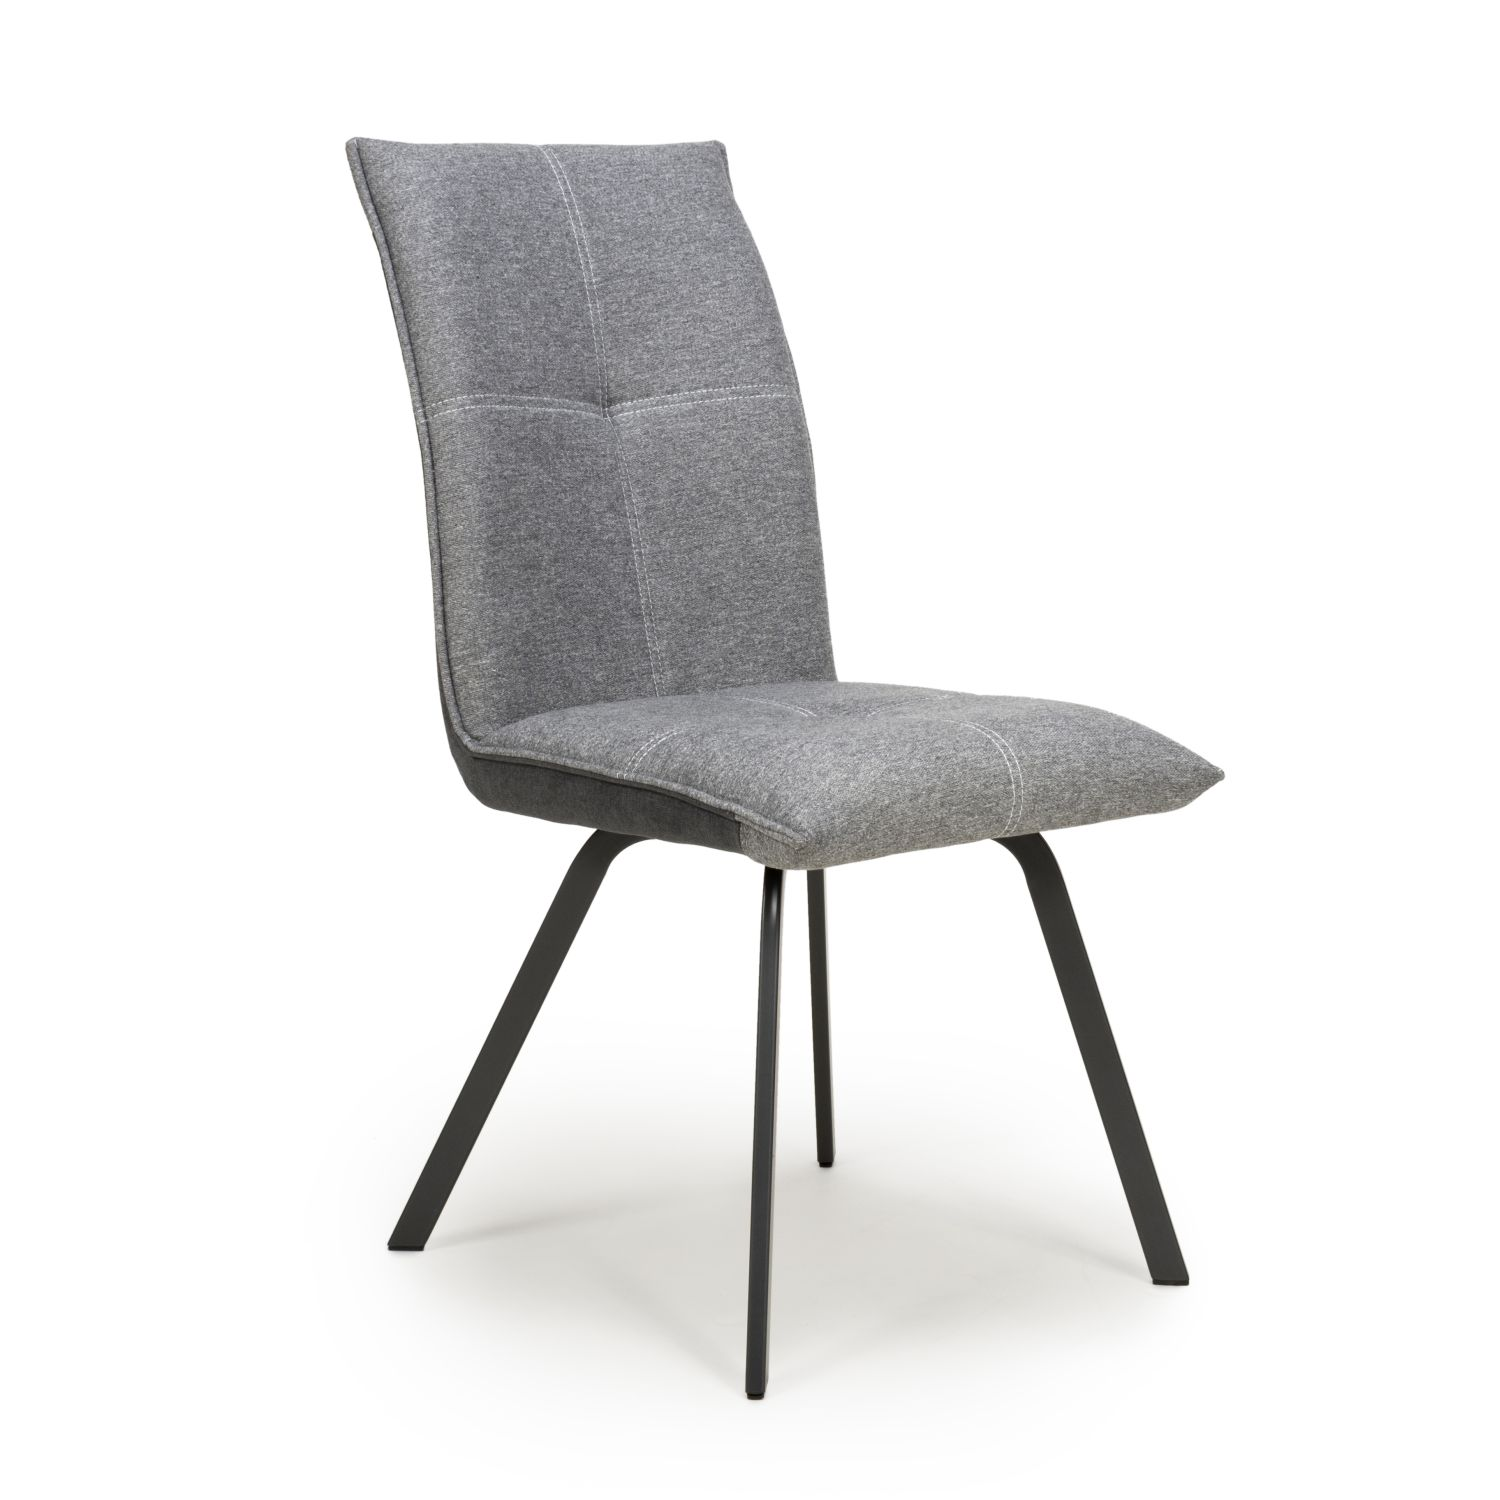 Ariel Light grey two tone chenille fabric dining chair